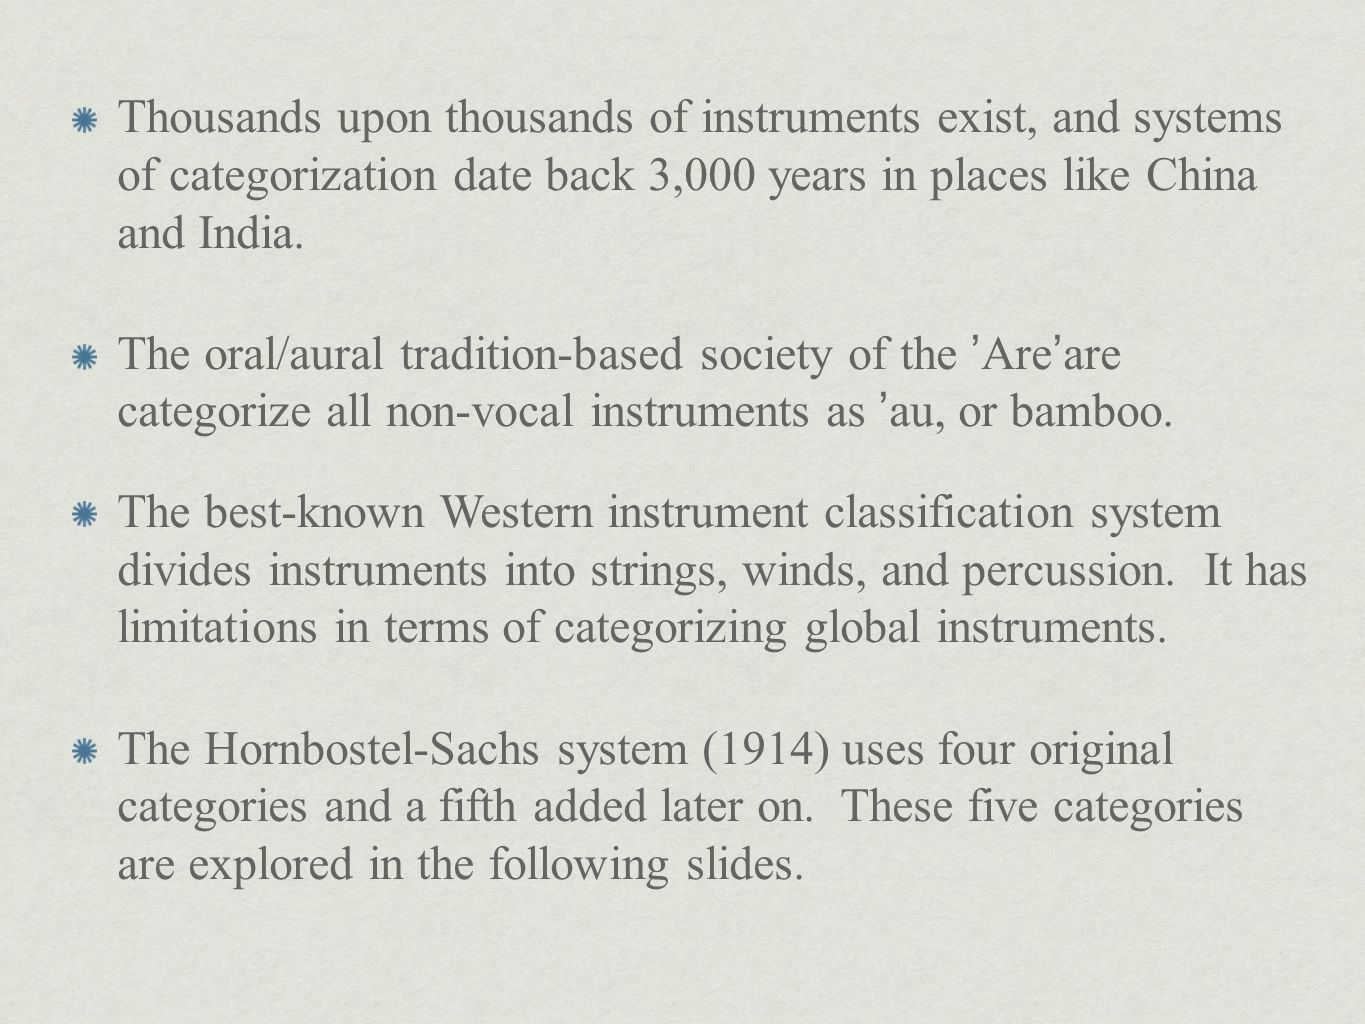 Thousands upon thousands of instruments exist, and systems of categorization date back 3,000 years in places like China and India.